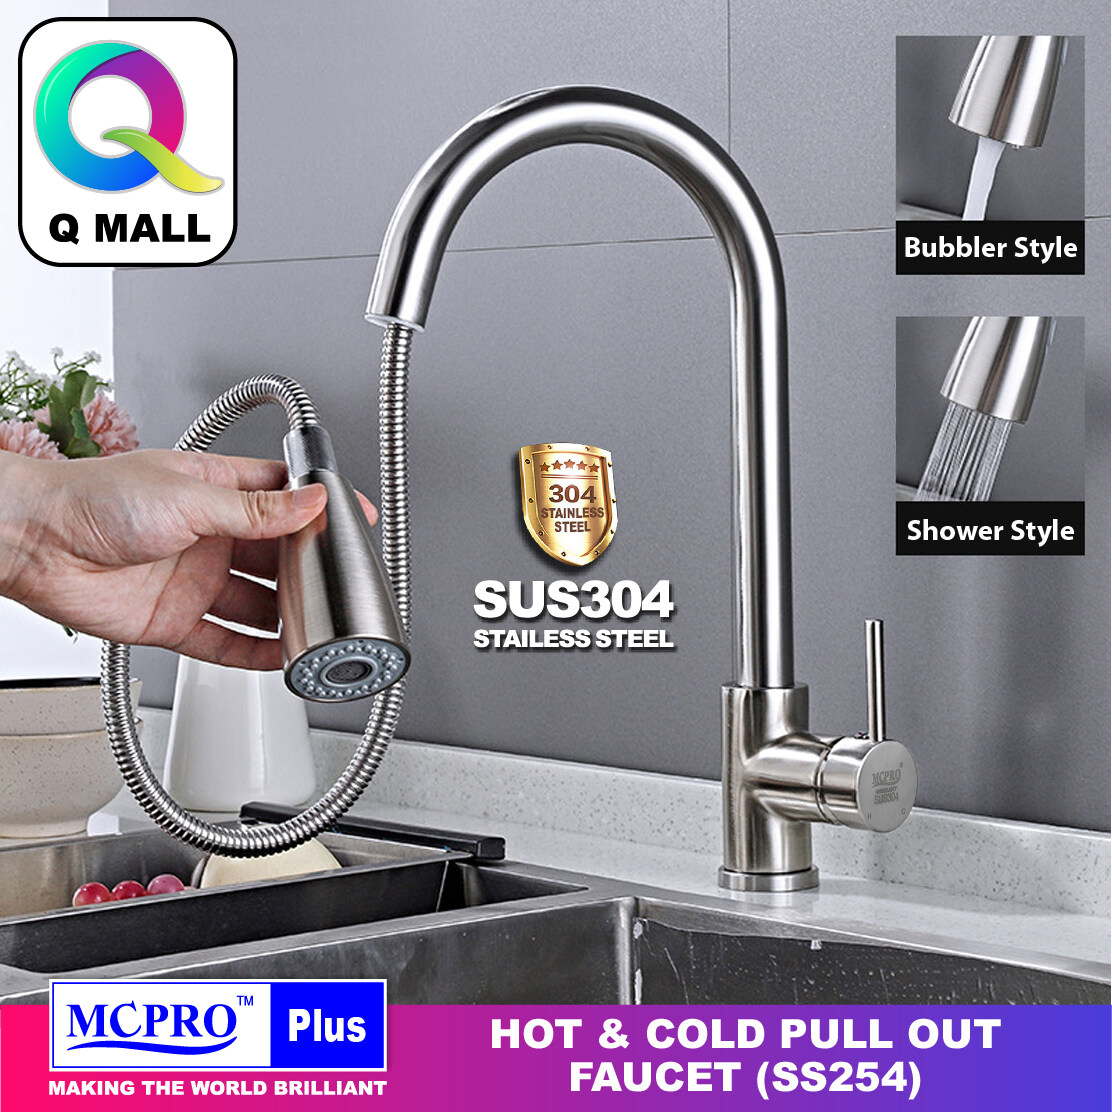 mcpro plus stainless steel sus 304 bathroom kitchen sink water tap hot and cold pull out faucet pillar sink tap ss254